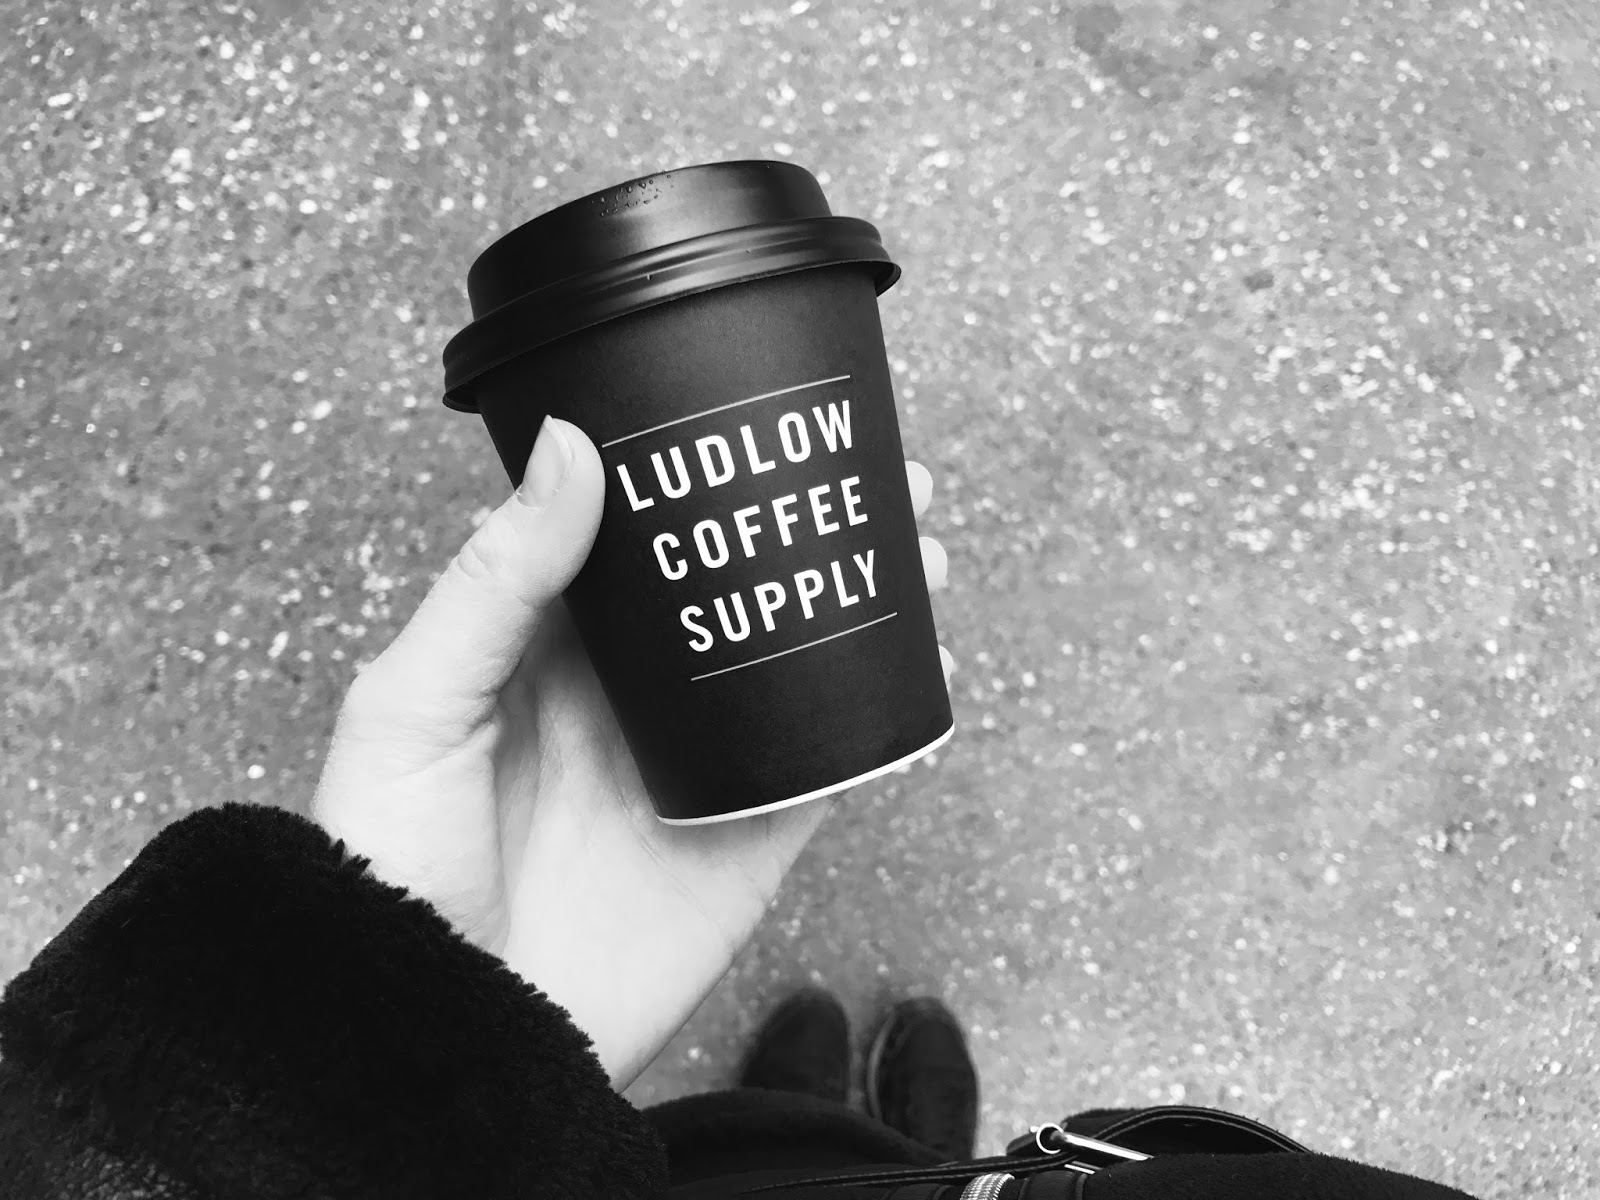 LUDLOW COFFEE SUPPLY